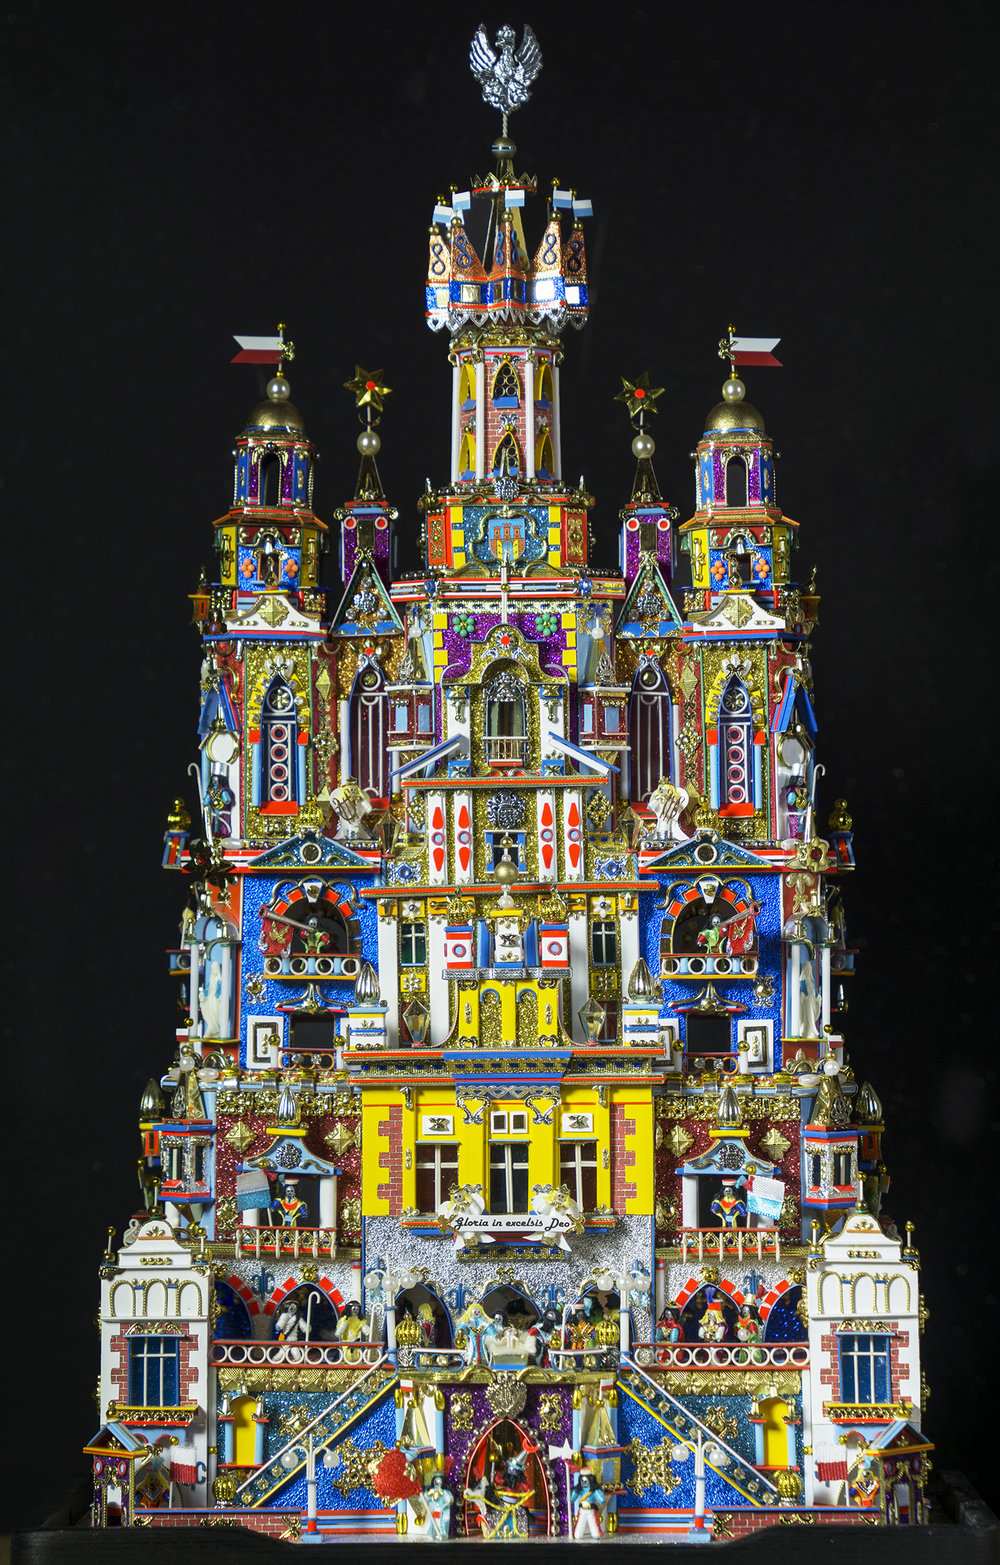 Figure 14: This Nativity, known as a szopka, was made in Poland by Kazimierz Stopinski. The unique folk tradition of the szopka dates to the late 18th and early 19th centuries, with the portable theaters made for Nativity puppet plays. It takes the form of an elaborate building facade in which the tiny figures of the Holy Family are surrounded with fanciful architectural features similar to those seen on Krakow's historic buildings. Every year since 1937 a szopka-building competition has been held in Krakow's market square. Stopinski has won first prize three times for his entries (medium and small category), most recently in 2015. On loan from the Knights of Columbus Museum, New Haven, Connecticut.